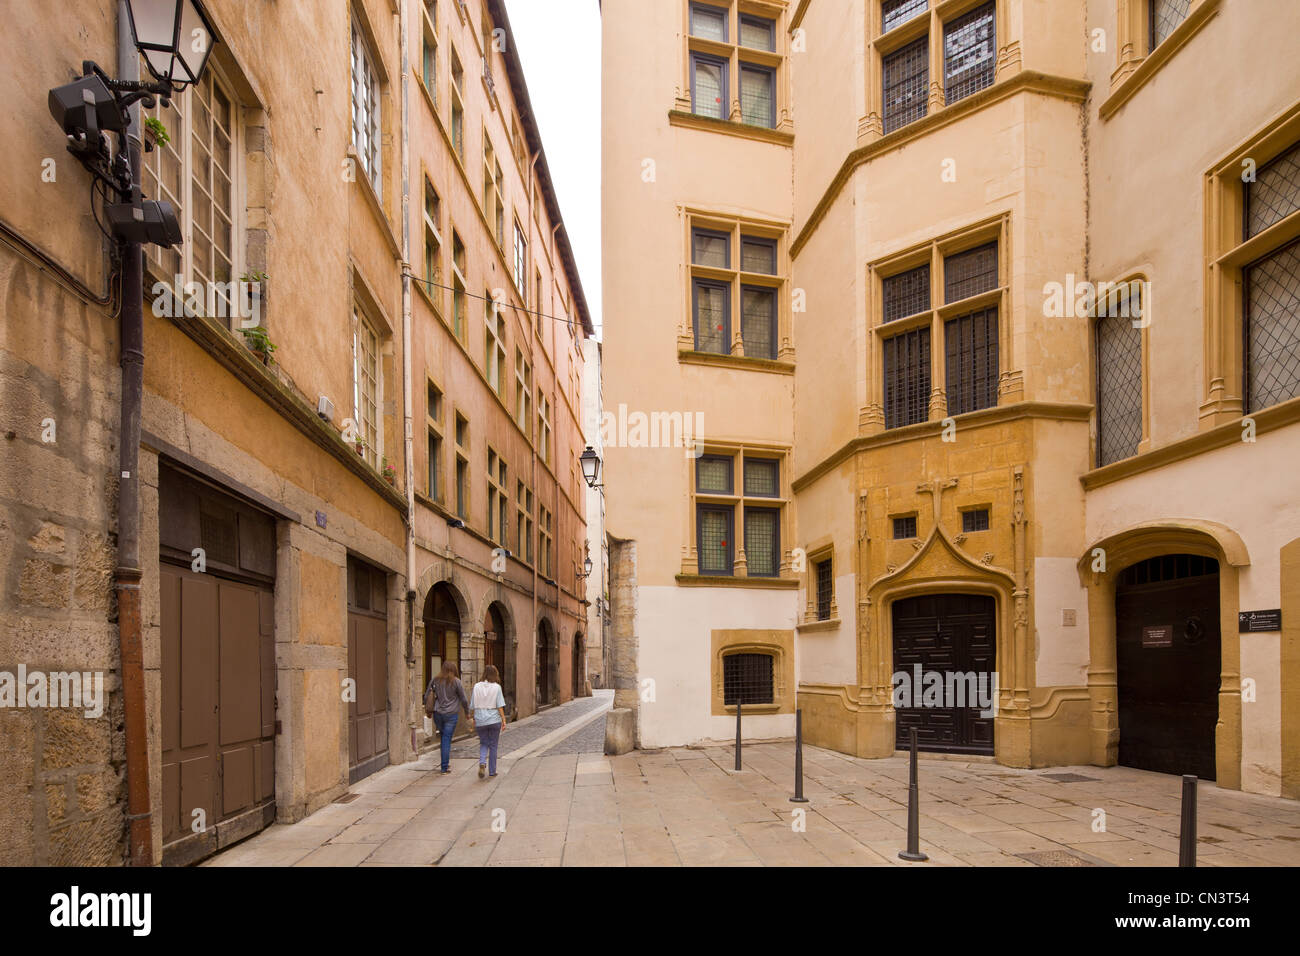 France, Rhone, Lyon, historical site listed as World Heritage by UNESCO, entrance of Musees de Gadagne in Rue Eronde - Stock Image